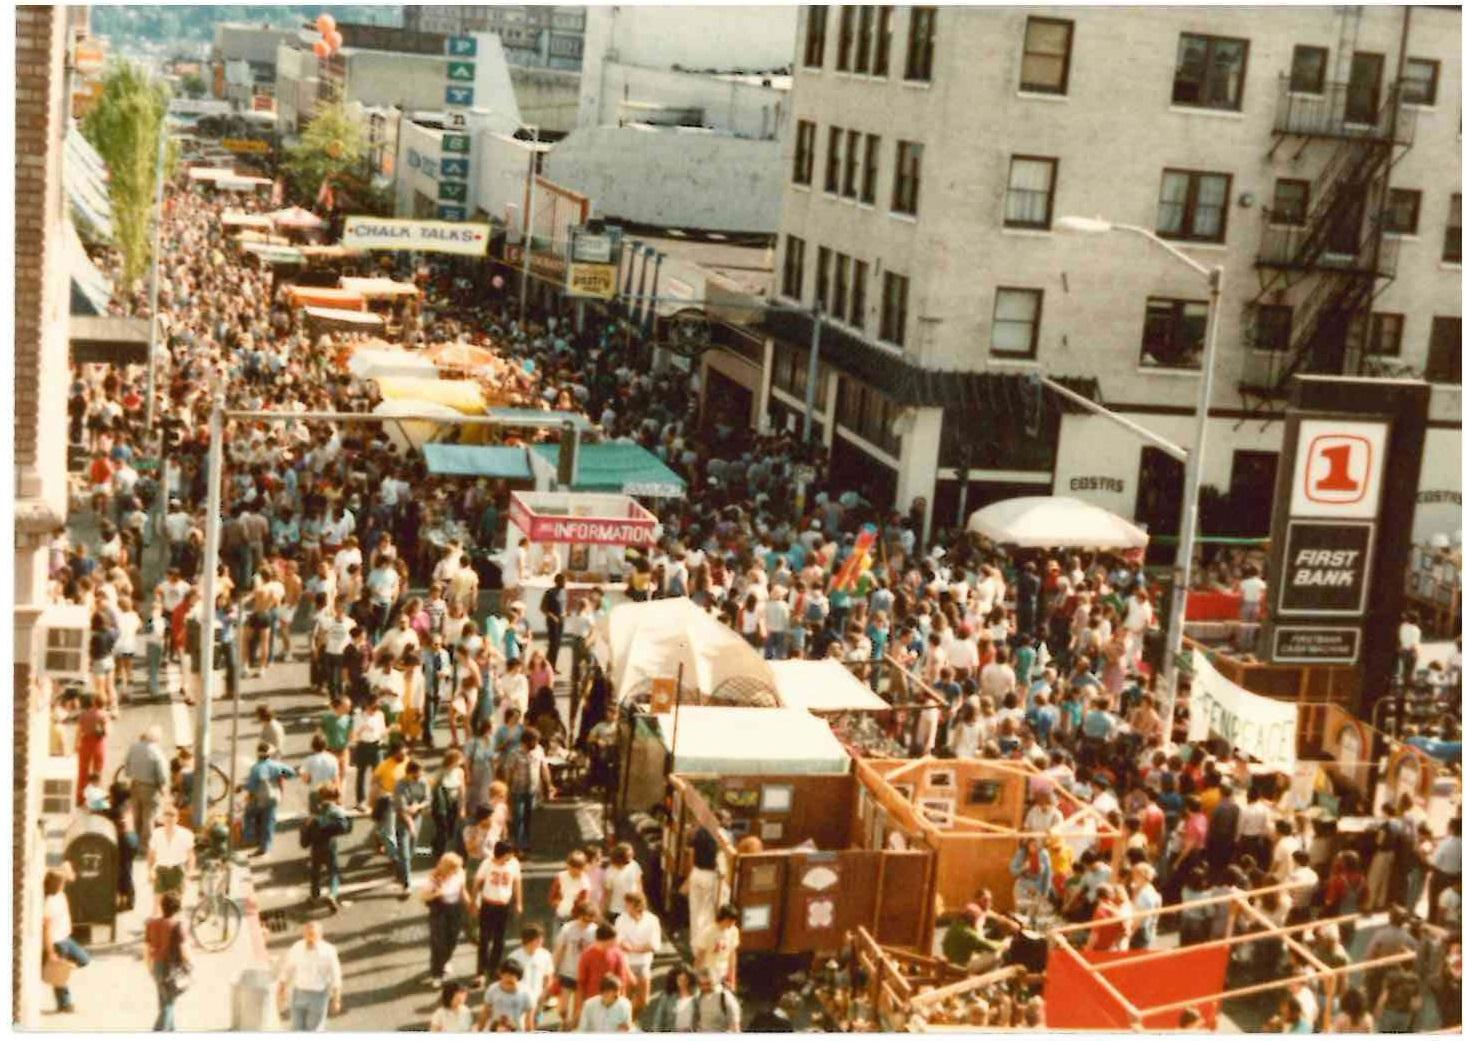 The 49th annual U District StreetFair is happening from May 19-20.